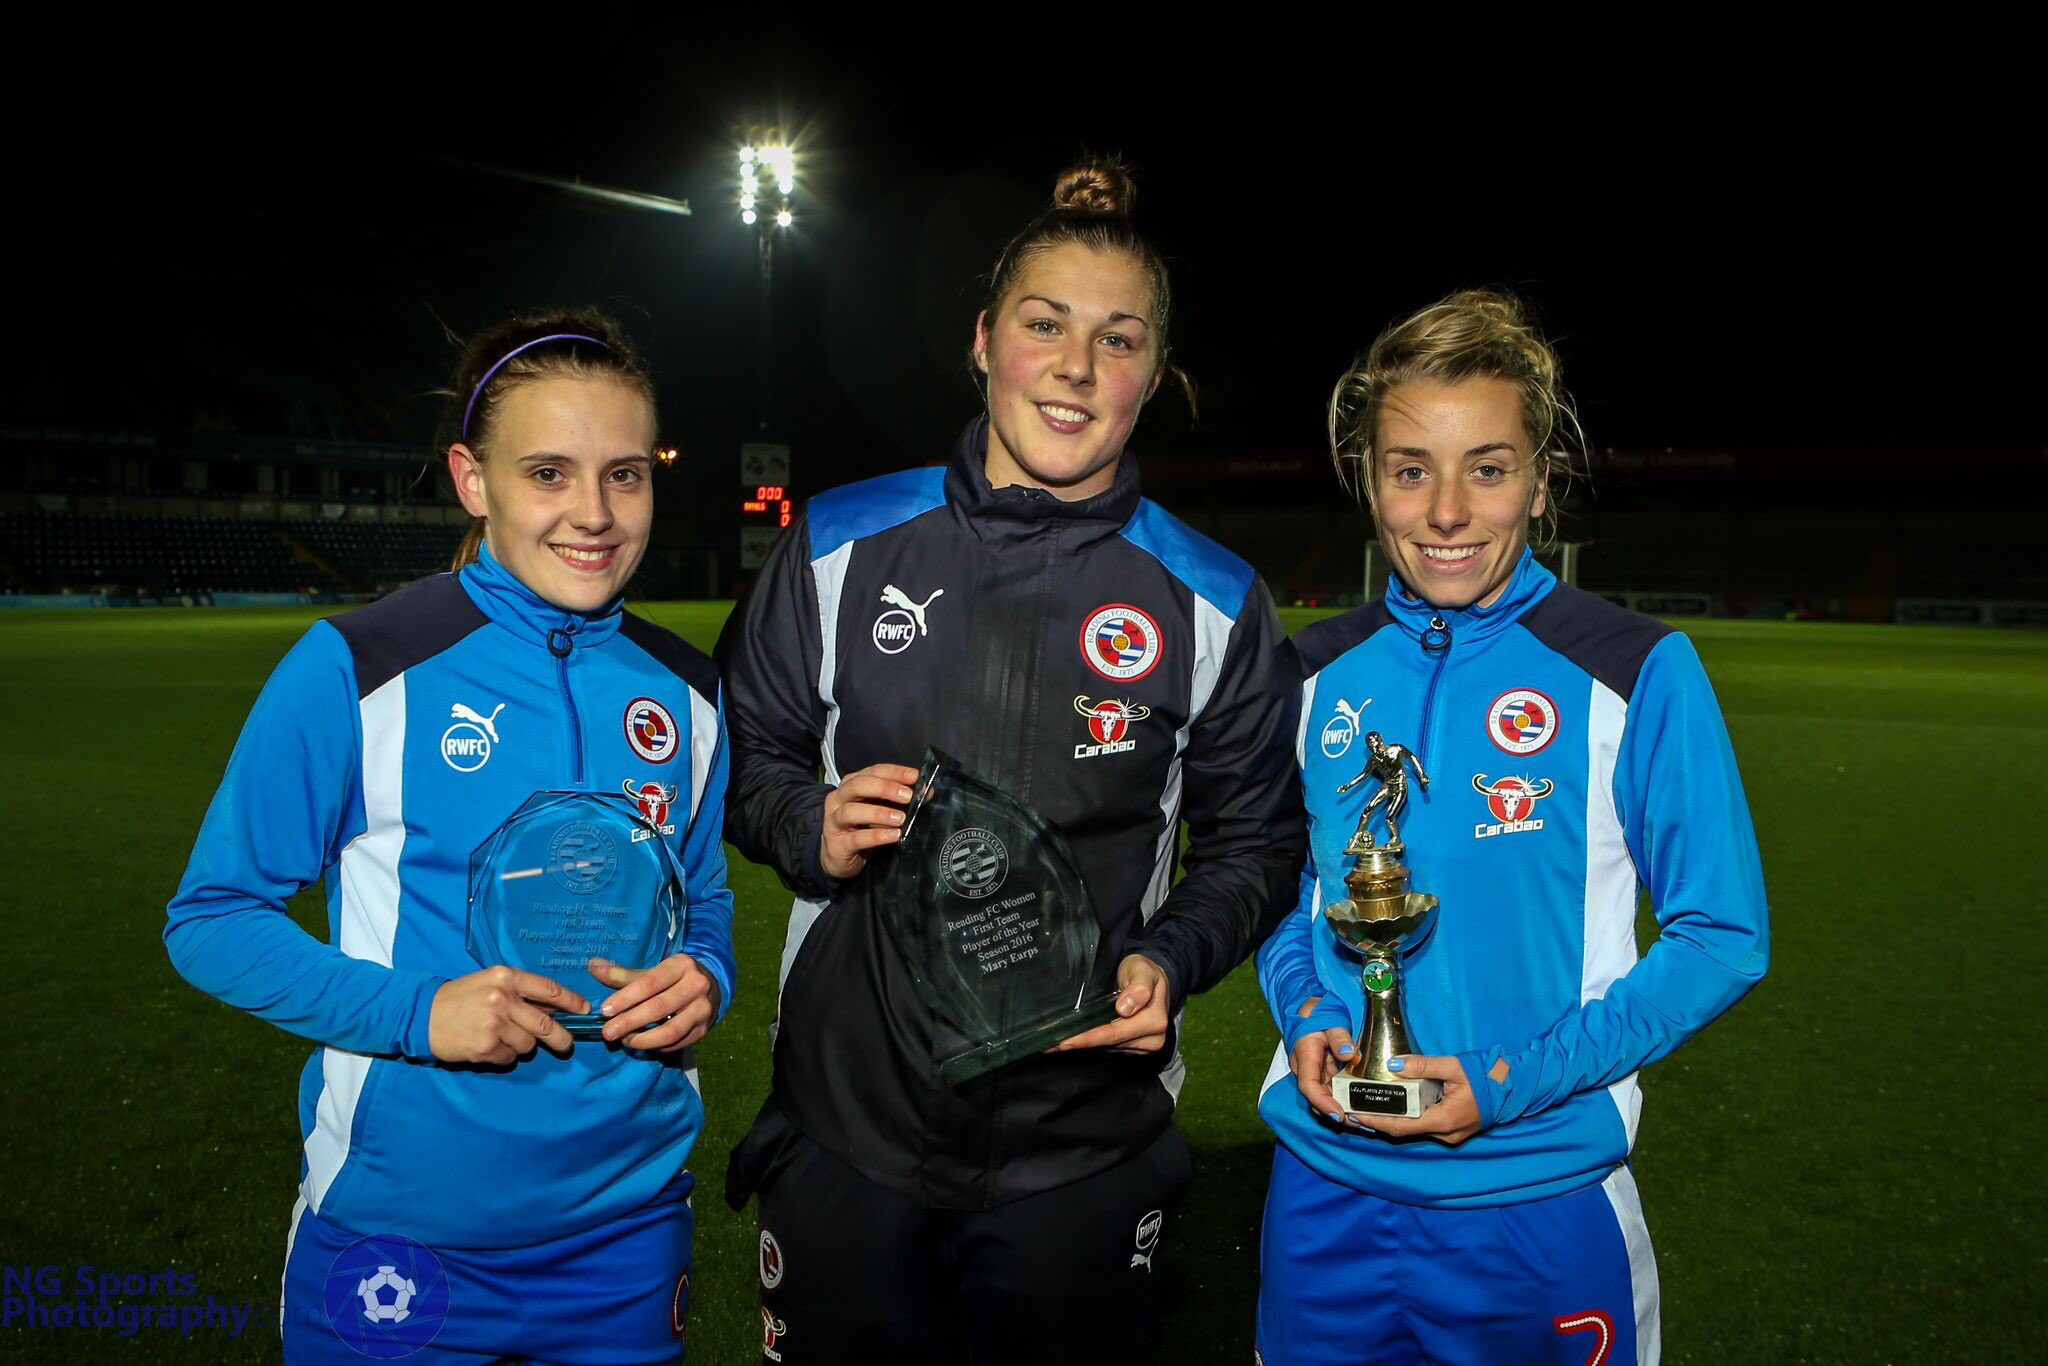 L-R: Reading FC Women Players' Player of the Year, Lauren Bruton; Player of the Year, Mary Earps; Supporters' Player of the Year, Becky Jane.